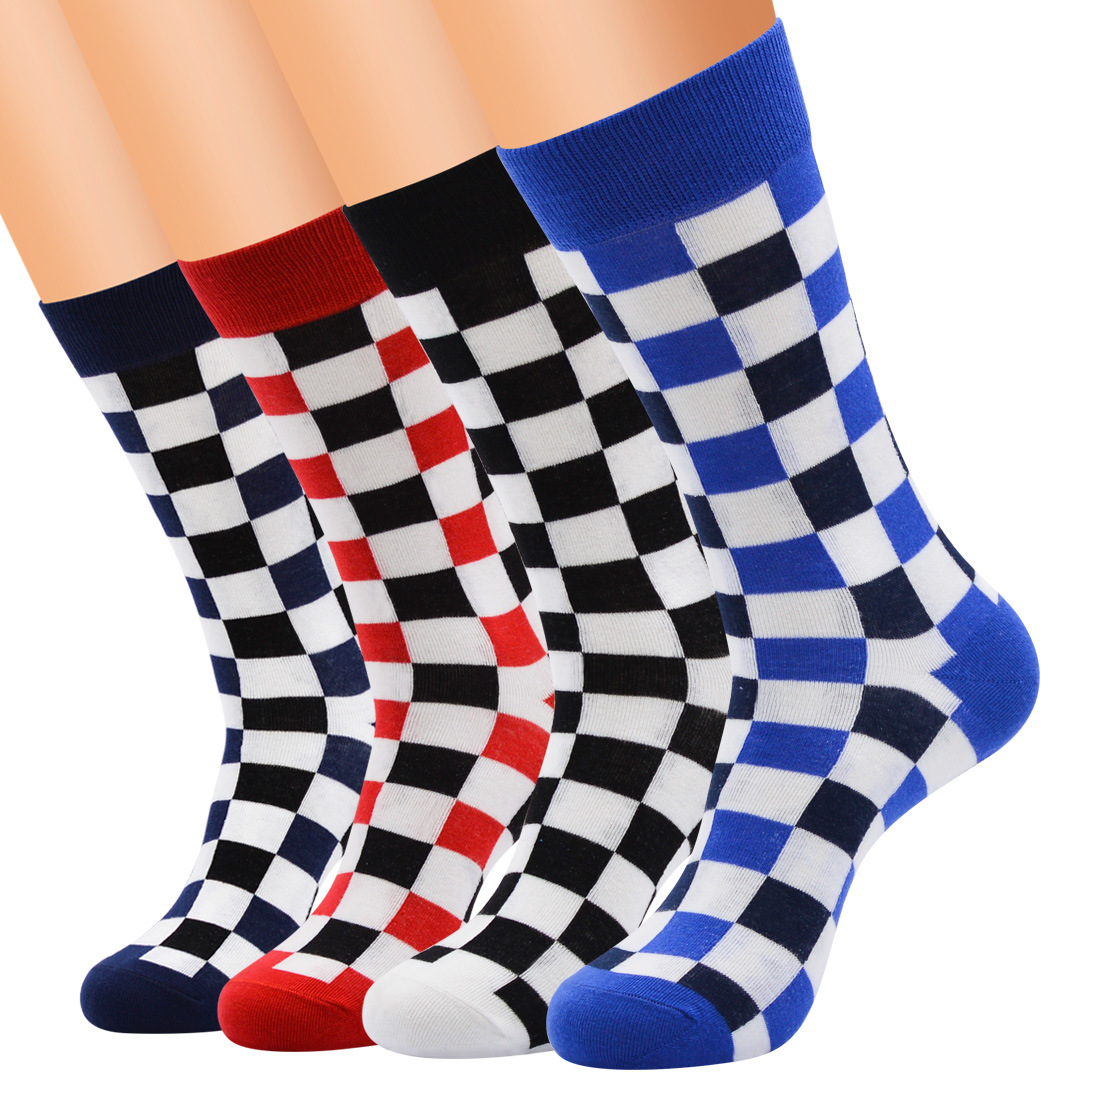 Wholesale 60 Pairs Korea Fashion Harajuku Trends Male Checkerboard Socks Style Geometric Checkered Socks Men Hip Hop Cotton Soks